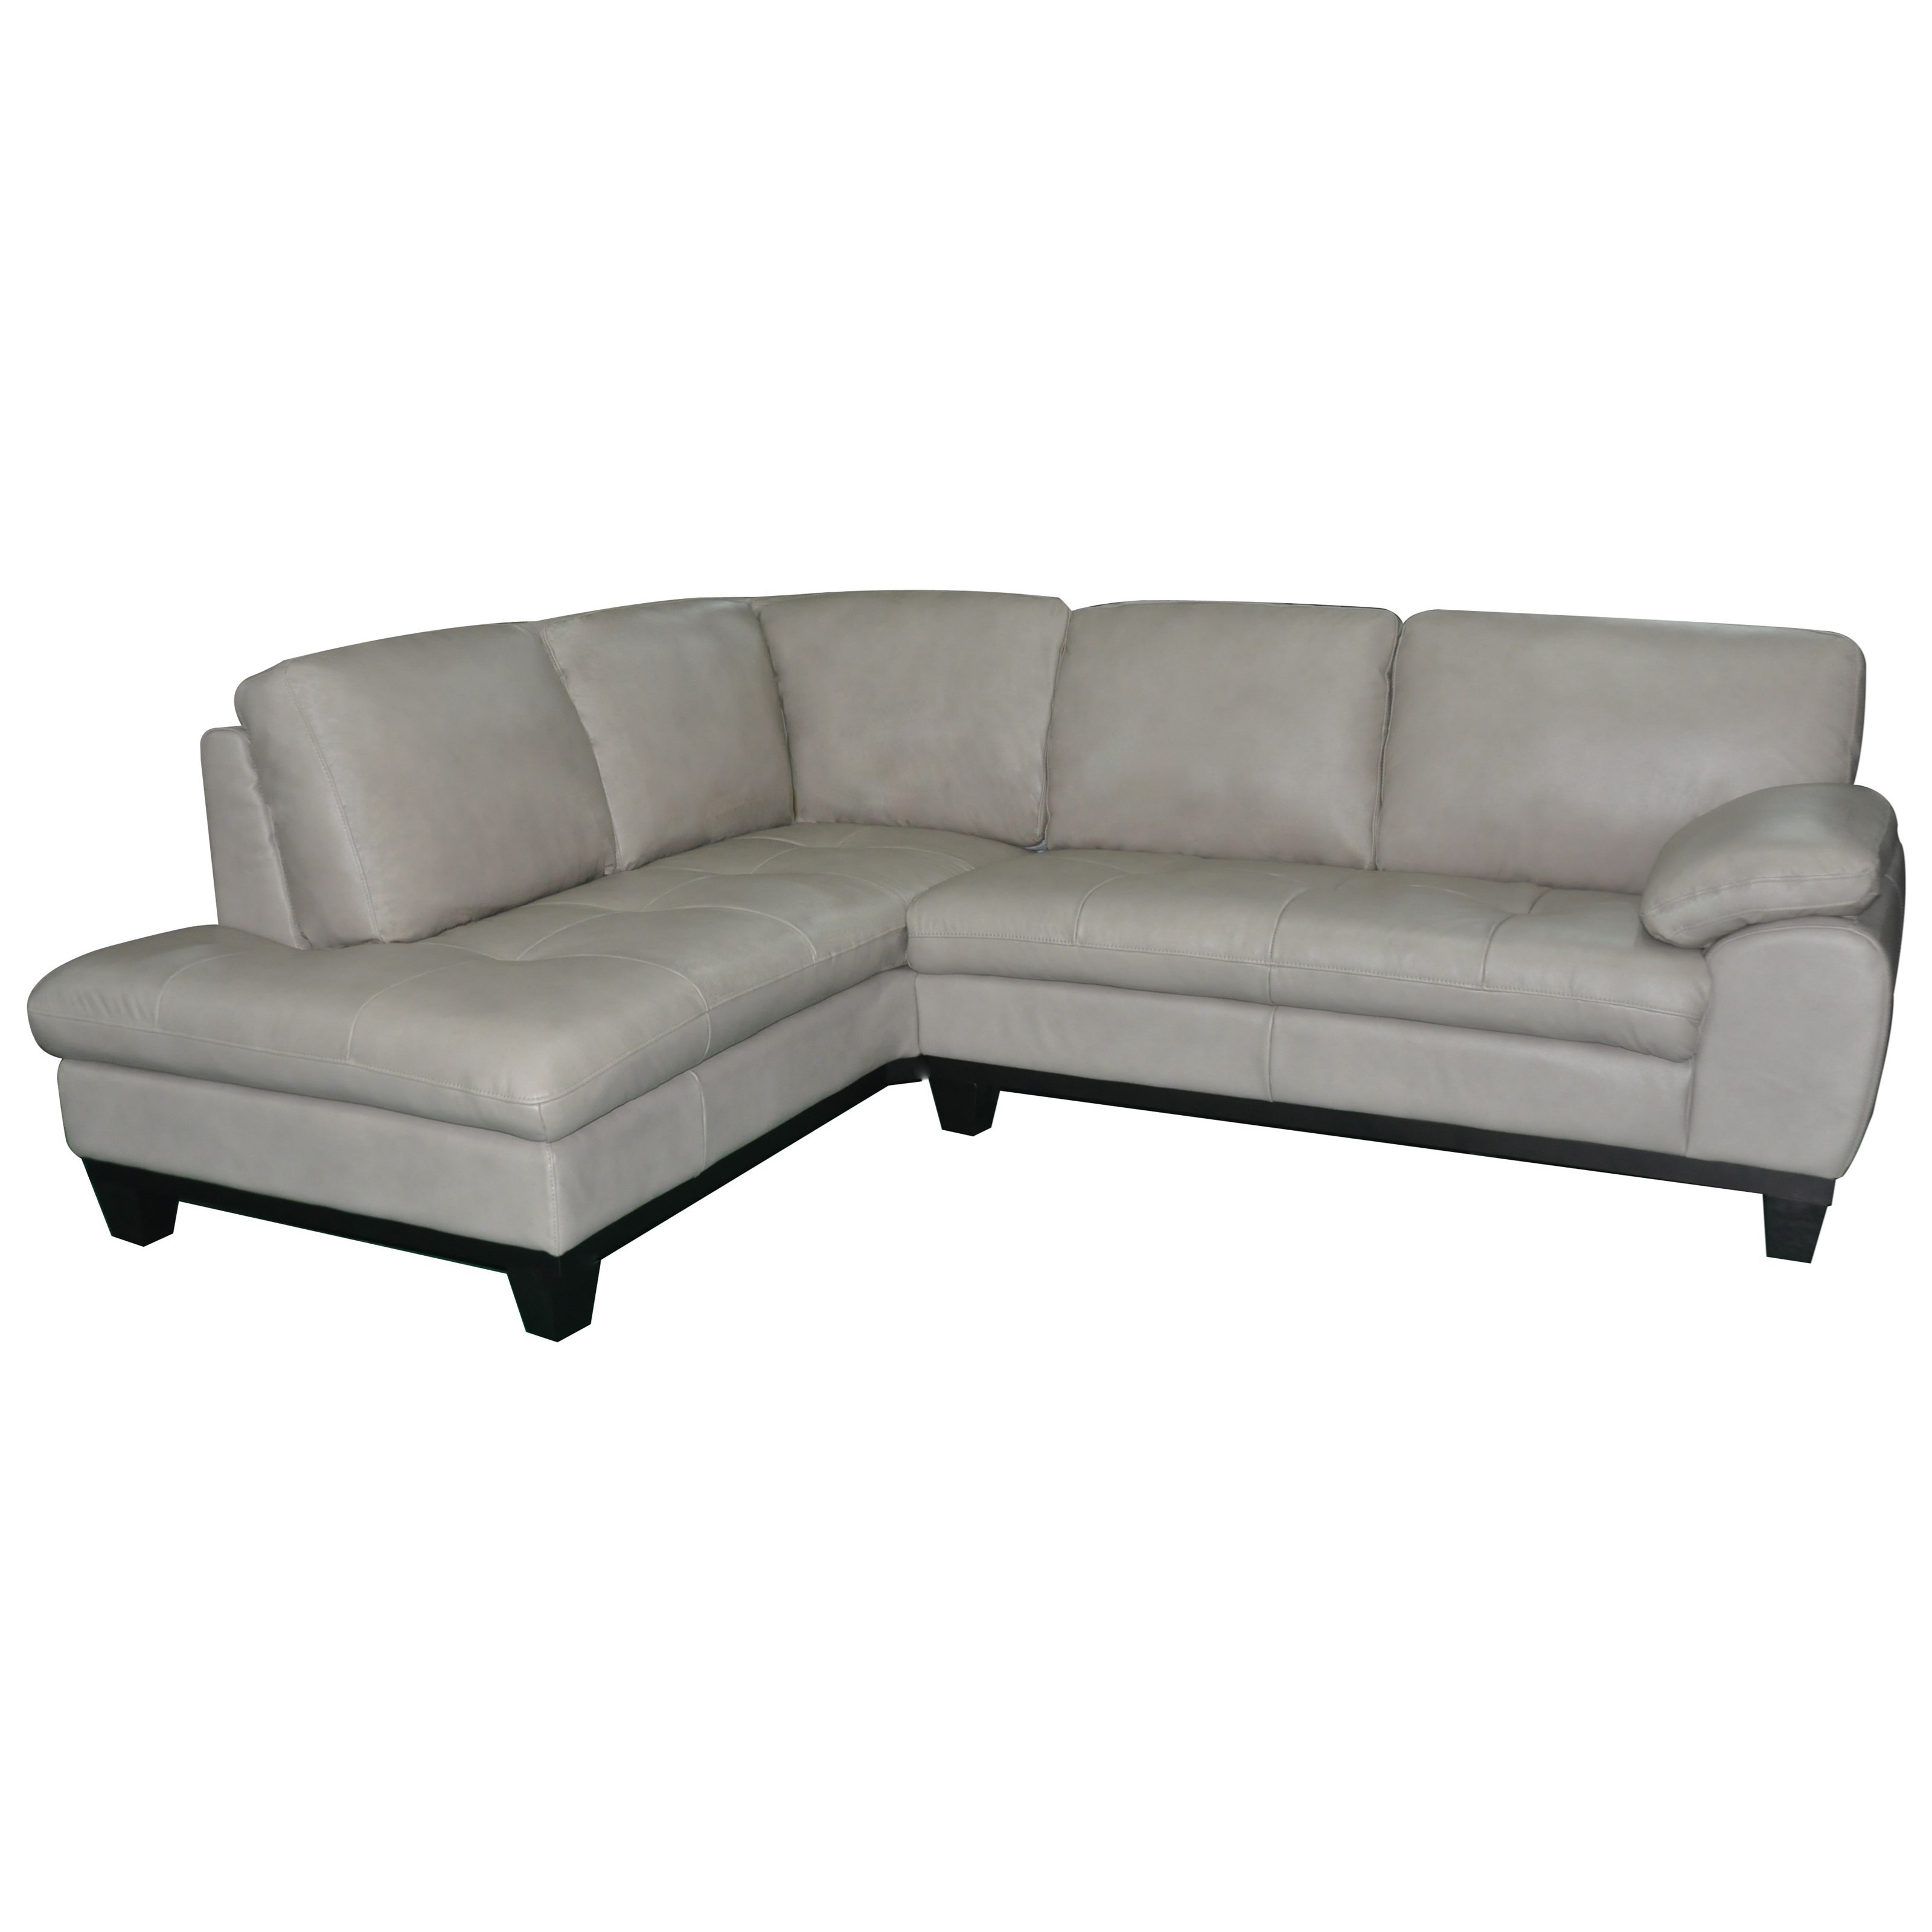 BFW Lifestyle 1263 2 Pc Sectional Sofa w/ LAF Chaise - Item Number: 1263B CL LAF+1263B 2 RAF-L1622